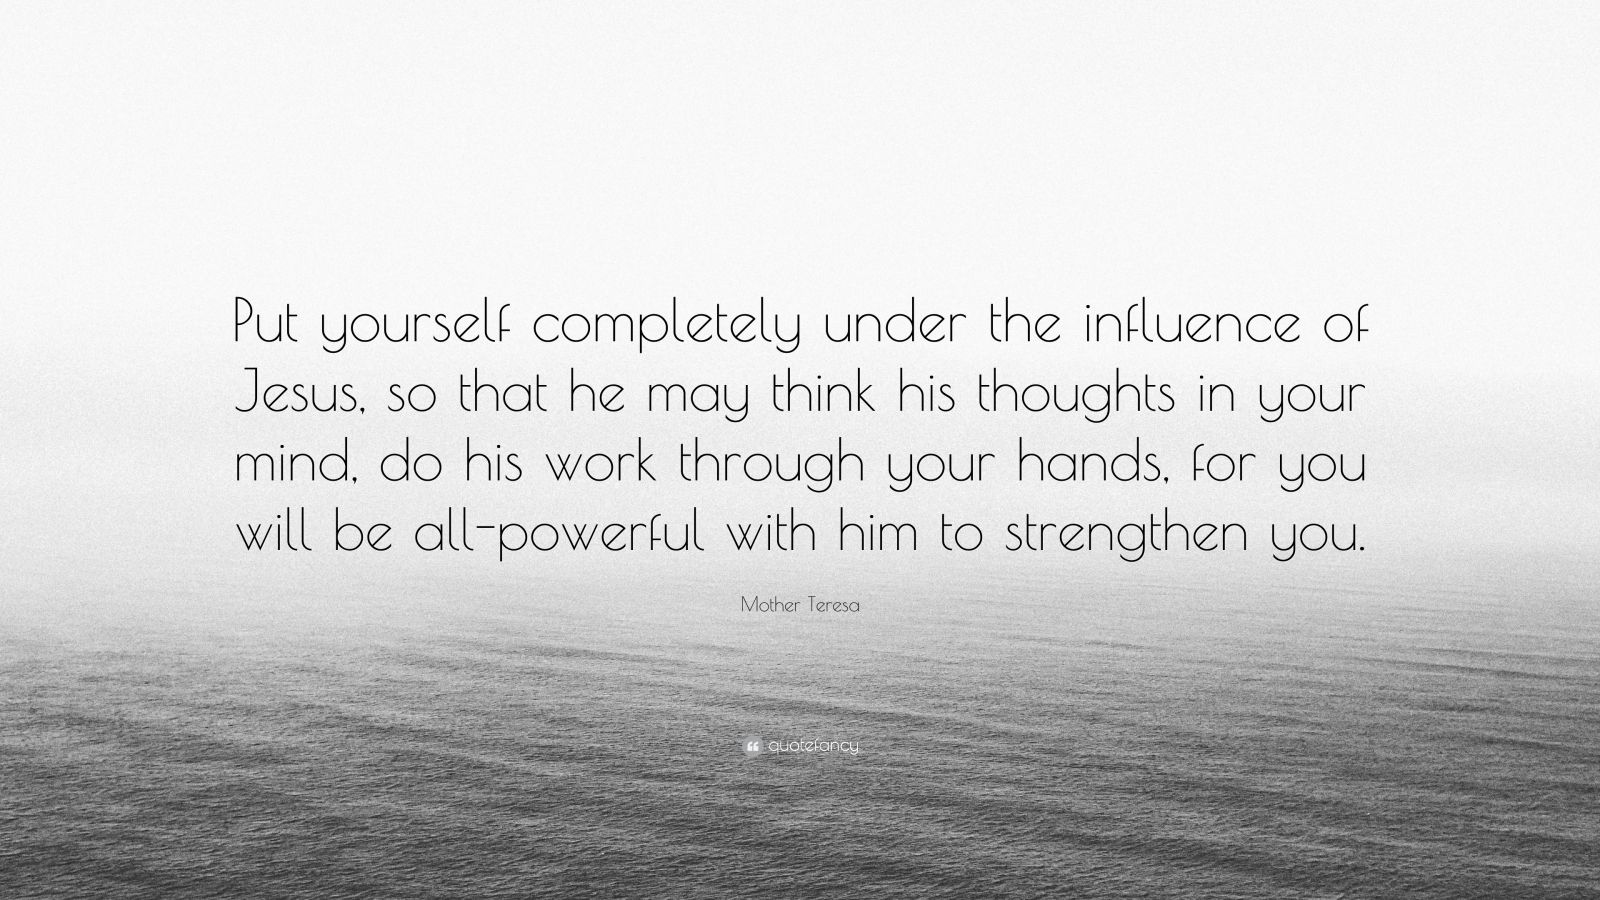 """Mother Teresa Quote: """"Put yourself completely under the influence of Jesus, so that he may think his thoughts in your mind, do his work through your hands, for you will be all-powerful with him to strengthen you."""""""